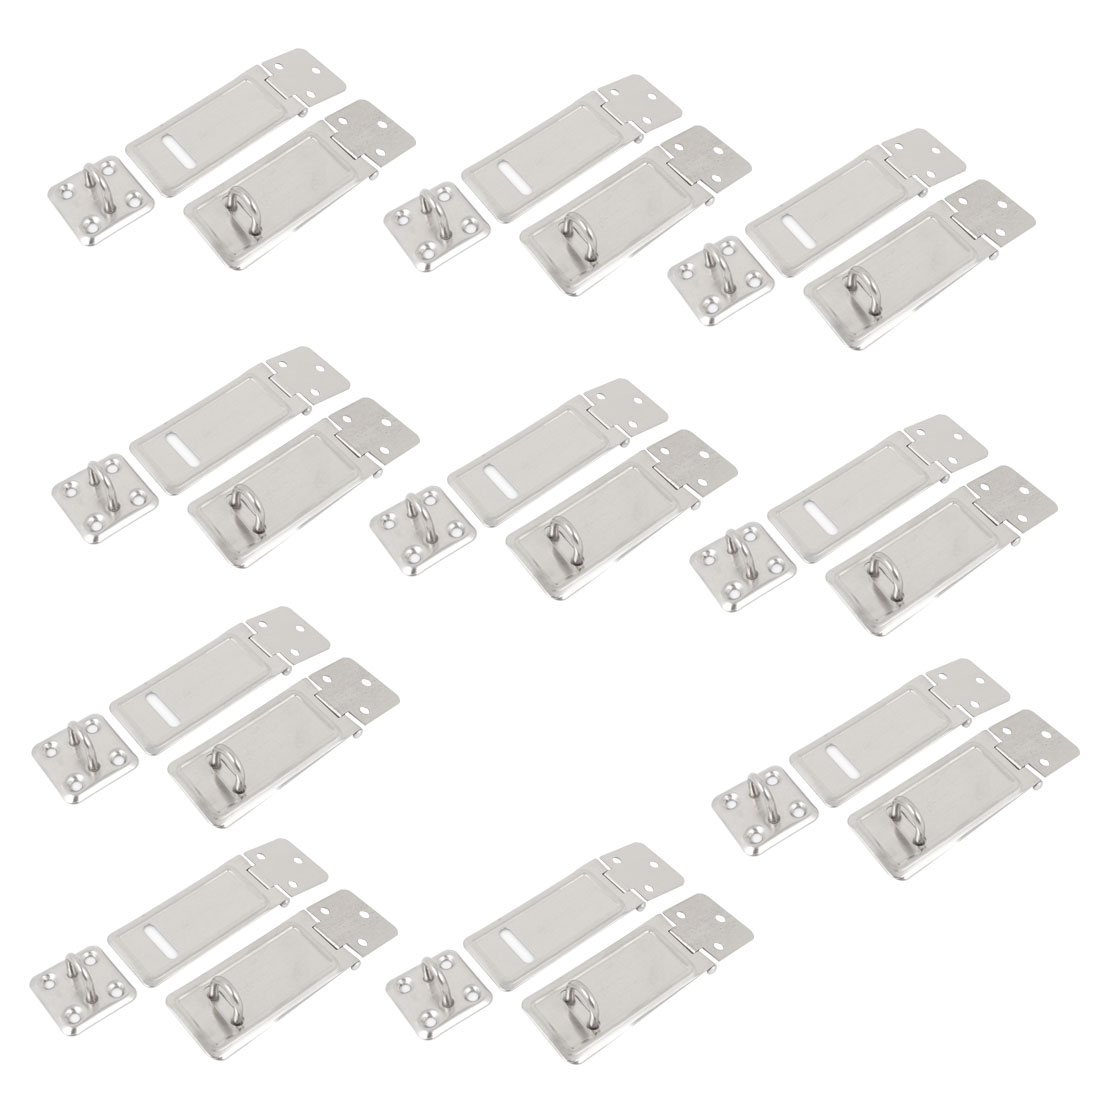 "20Pcs 3"" x 1.2"" Silver Tone Stainless Steel Replacement Saftey Desk Cabinet Lock Door Hasp Staple"